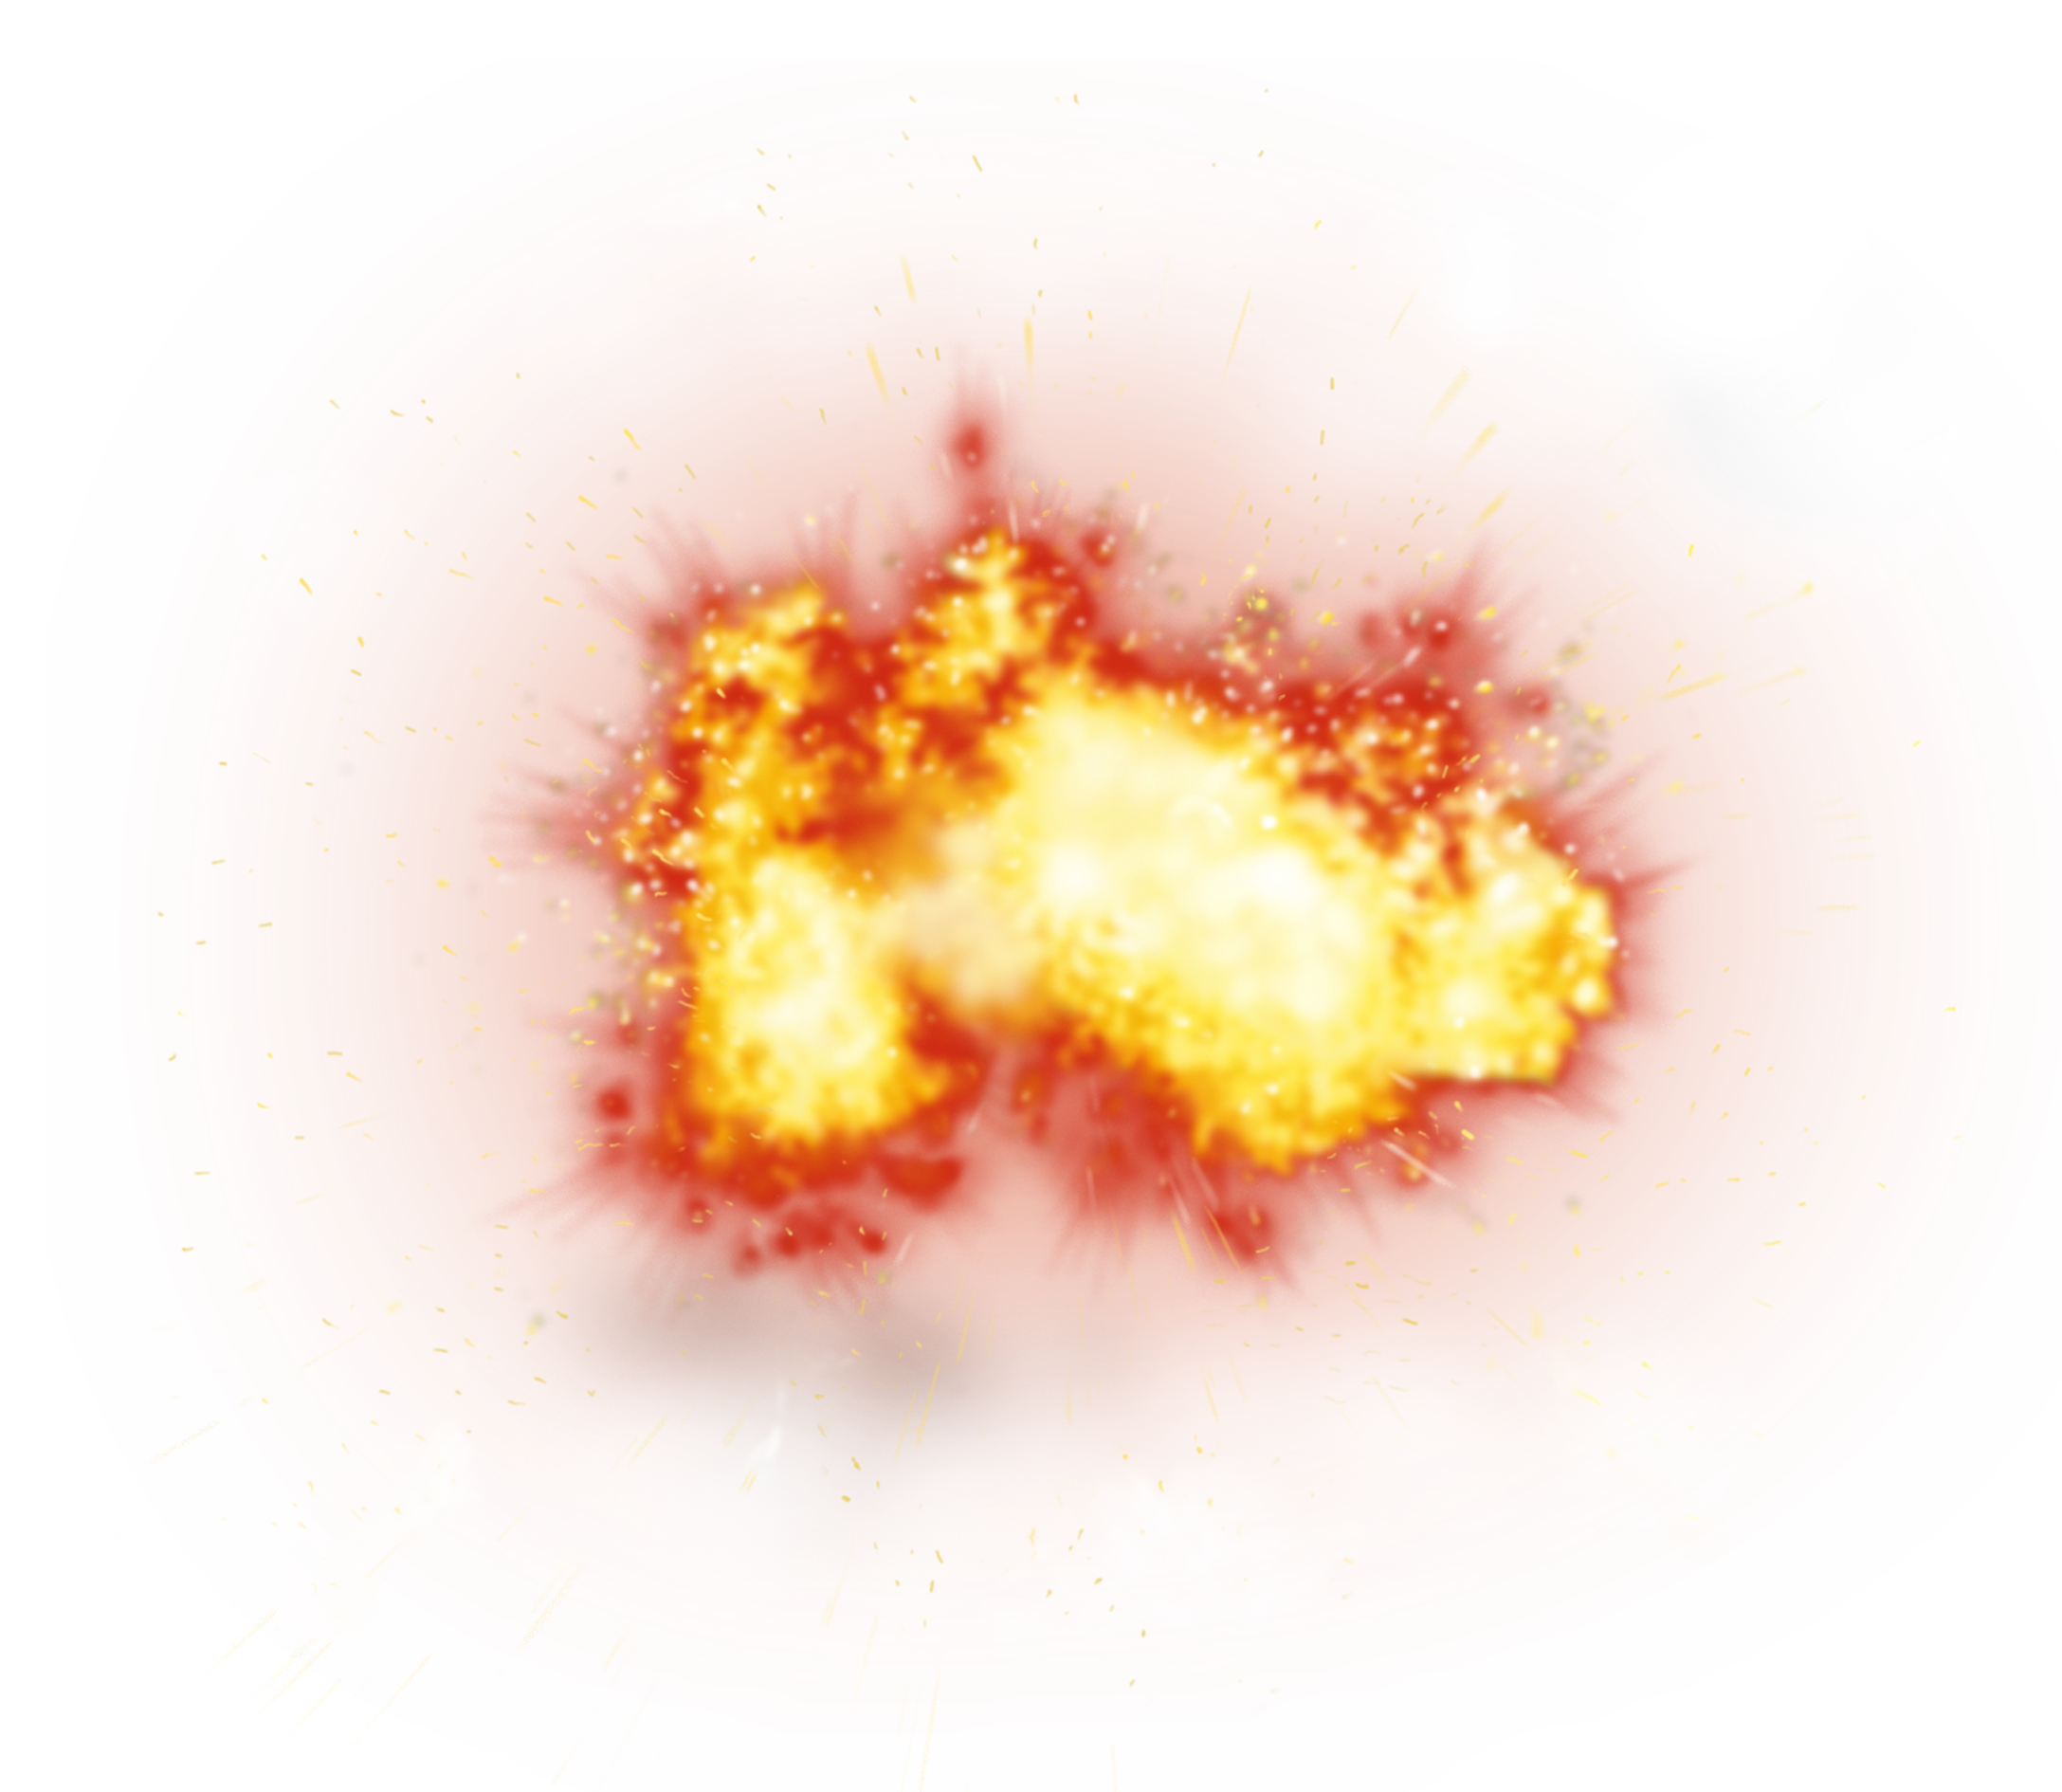 transparent explosions background